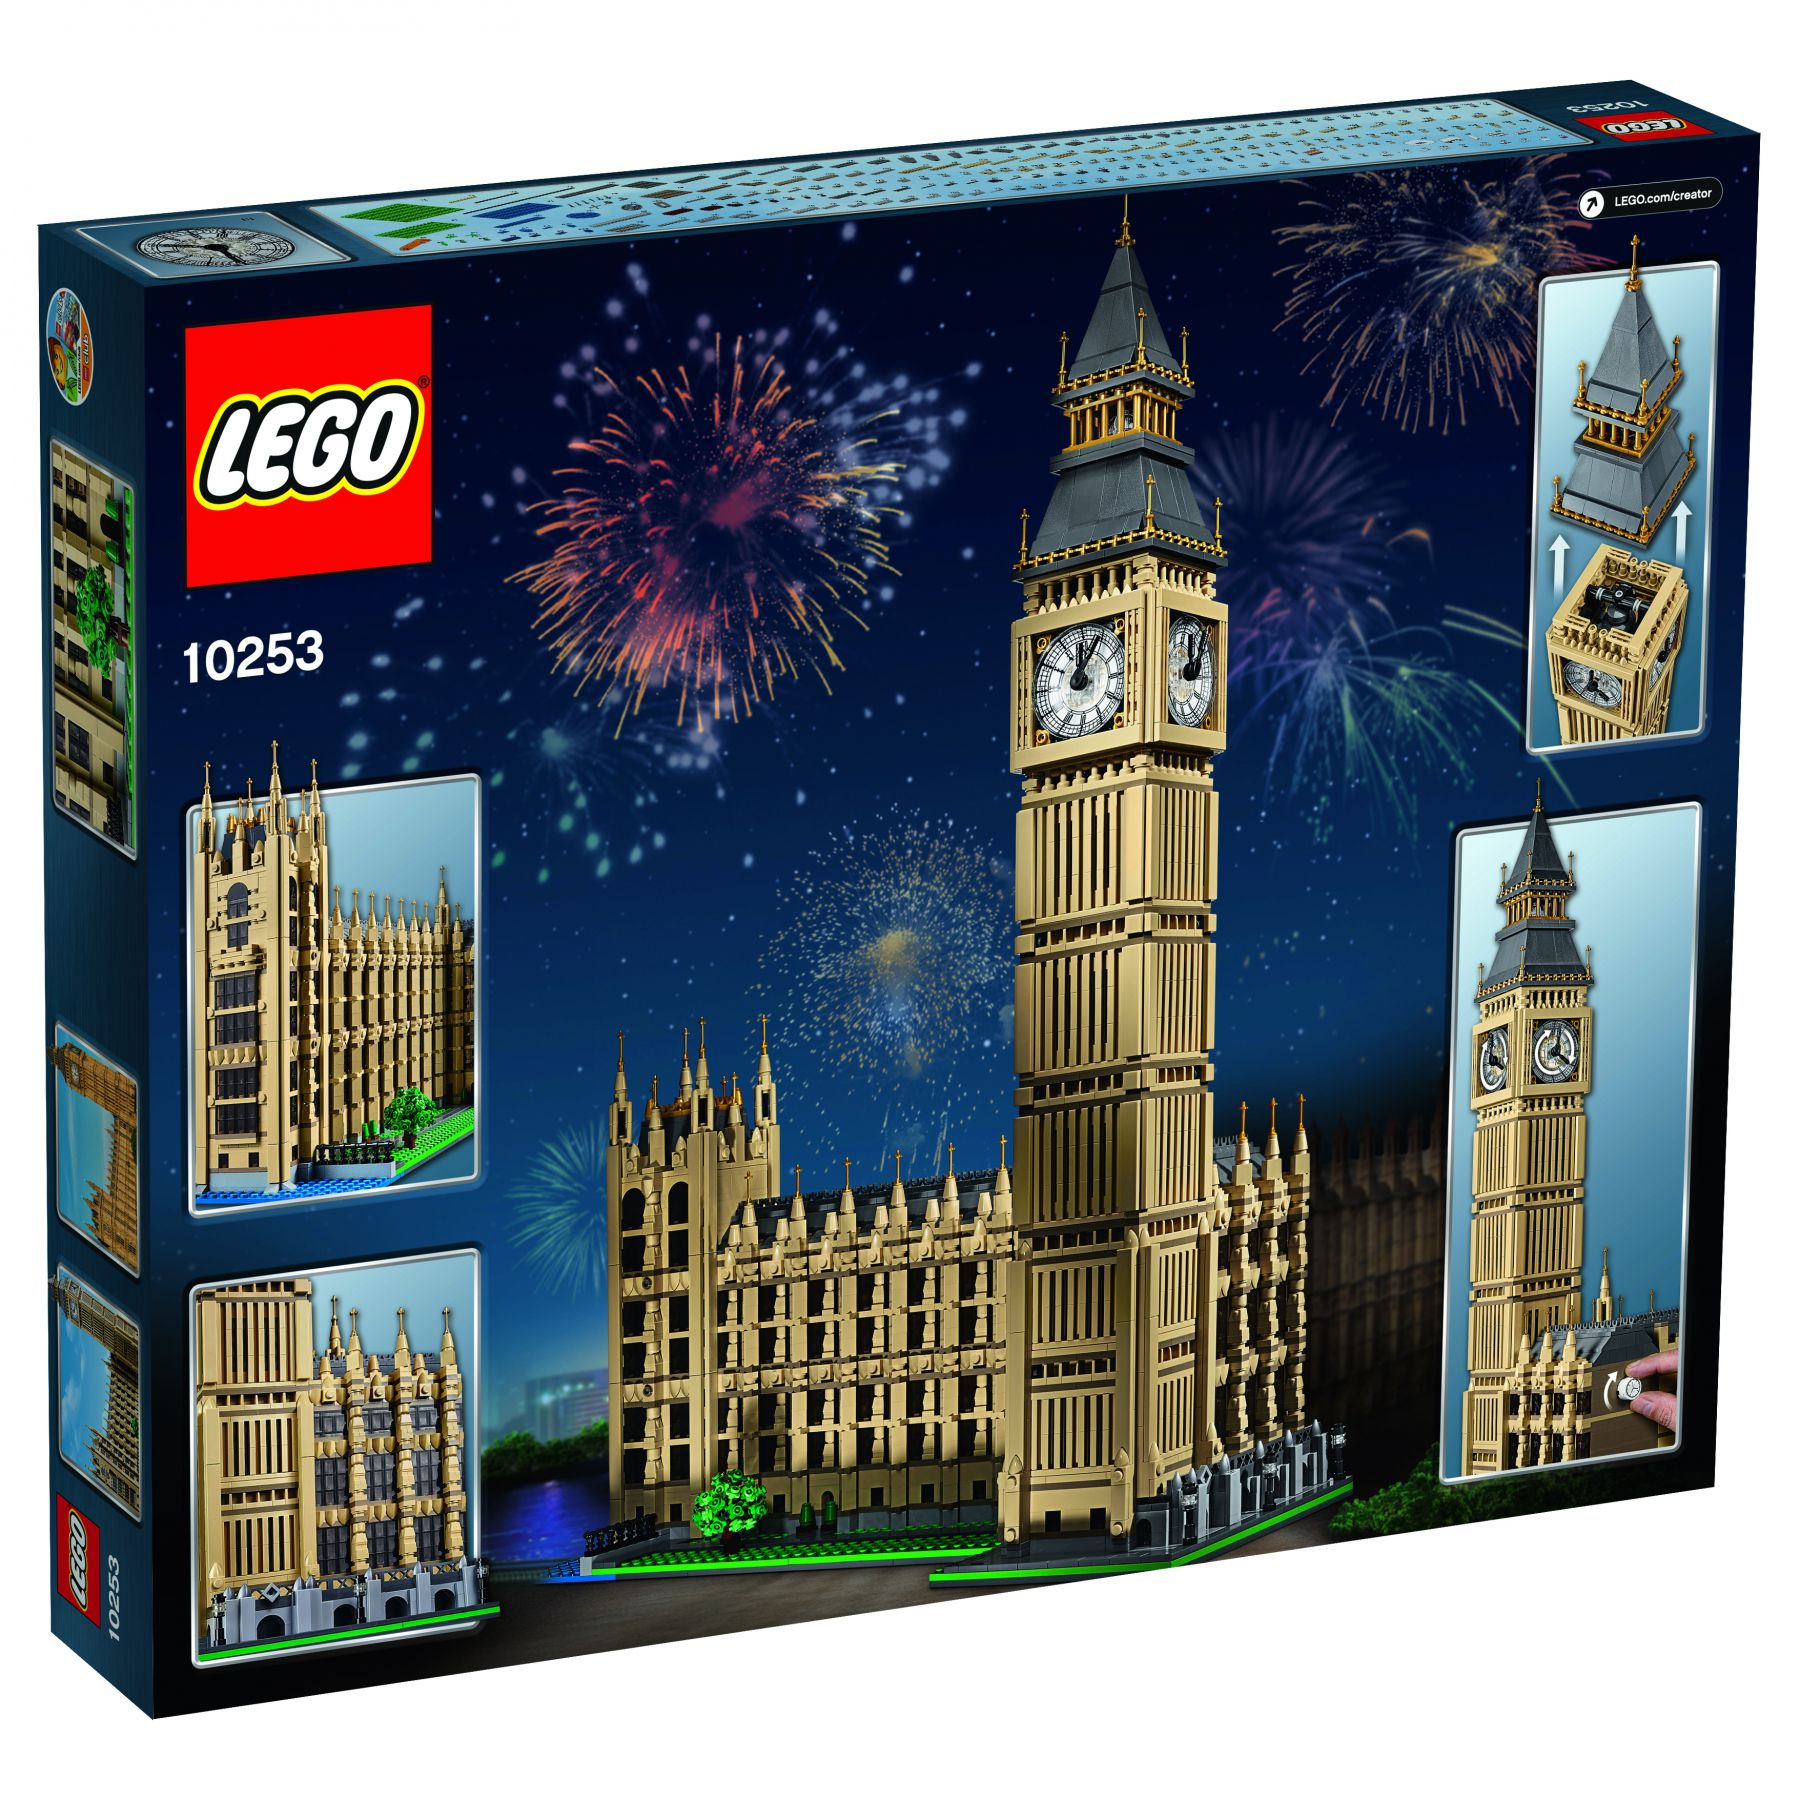 LEGO Advanced Models 10253 Big Ben LEGO_Creator_Big_Ben_10253-5.jpg